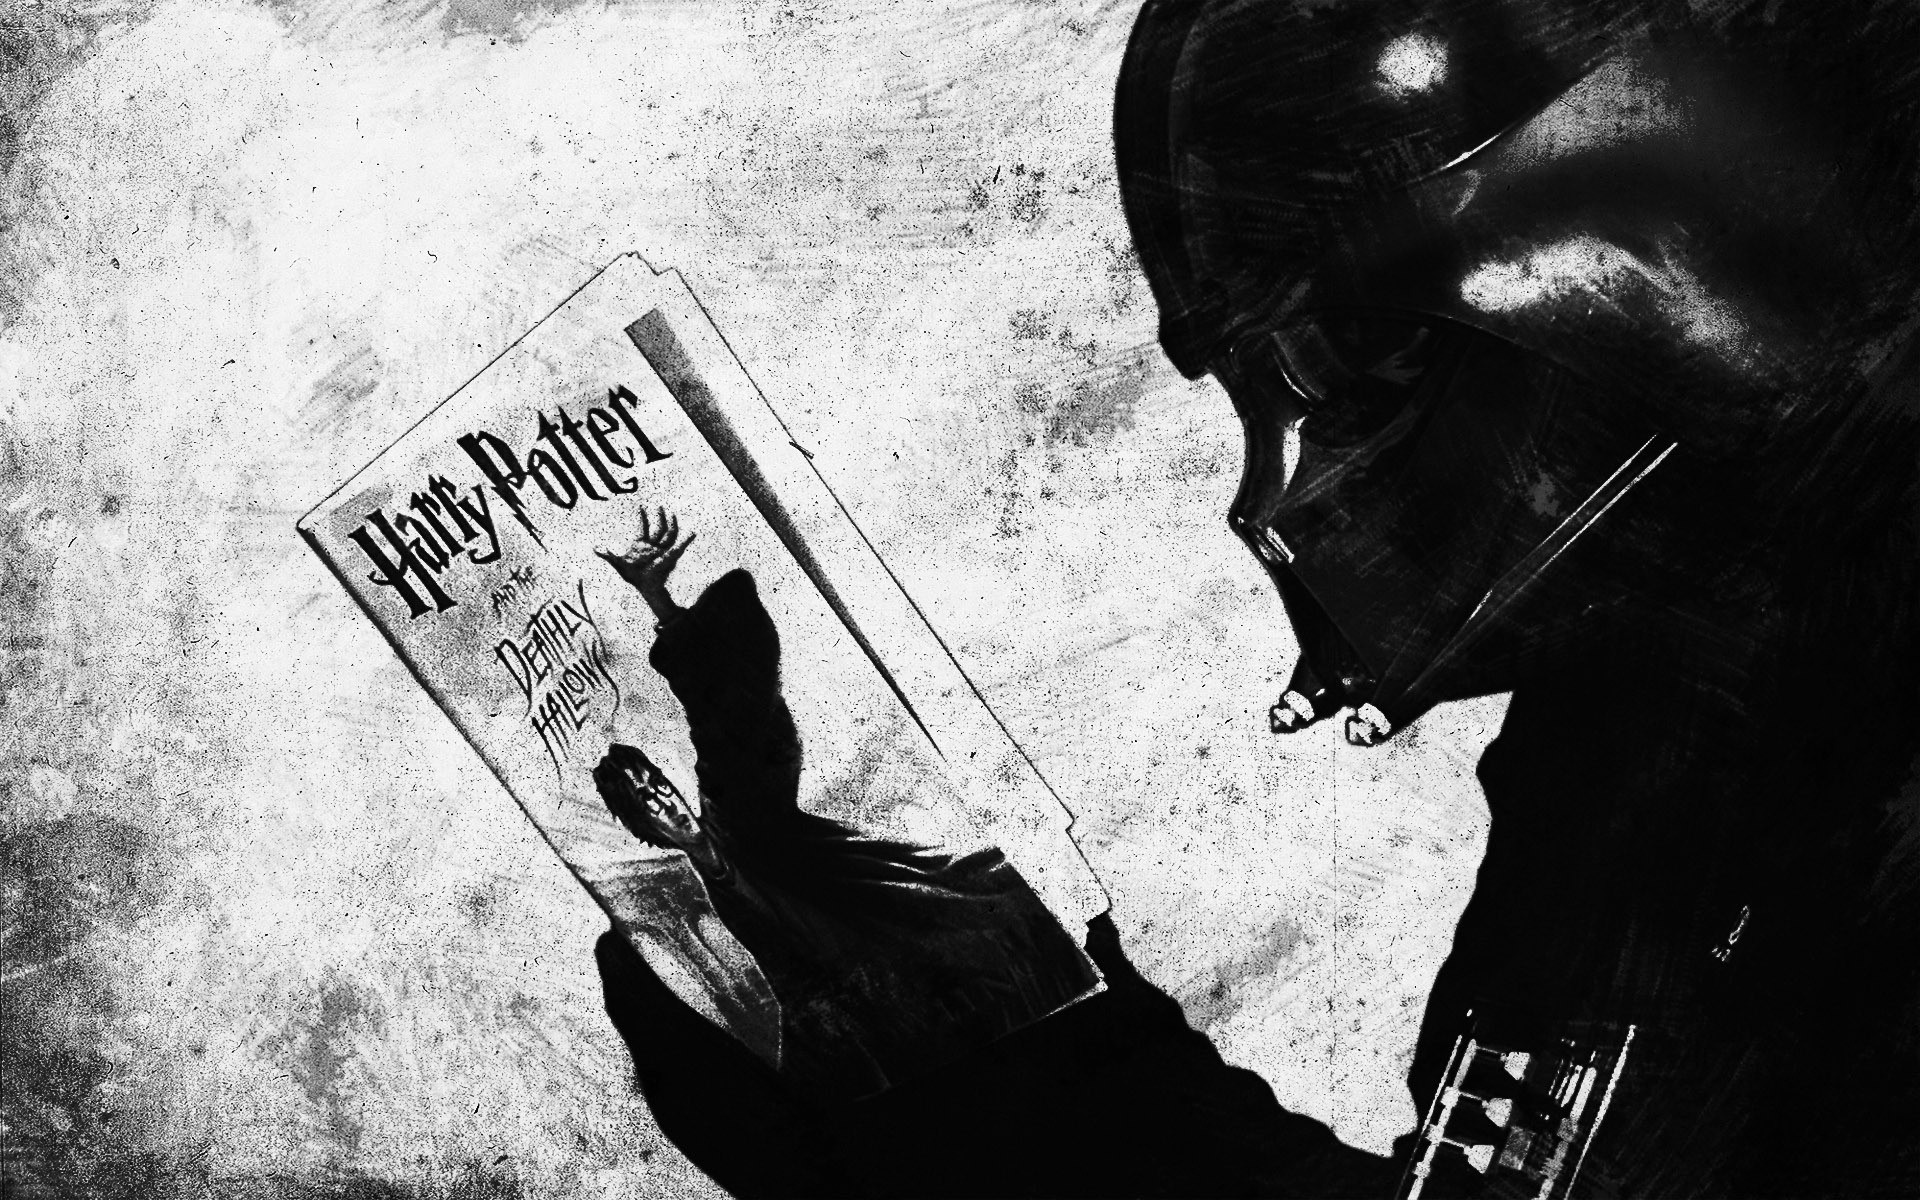 General 1920x1200 Star Wars Darth Vader Harry Potter and the Deathly Hallows humor Harry Potter monochrome mix up Sith